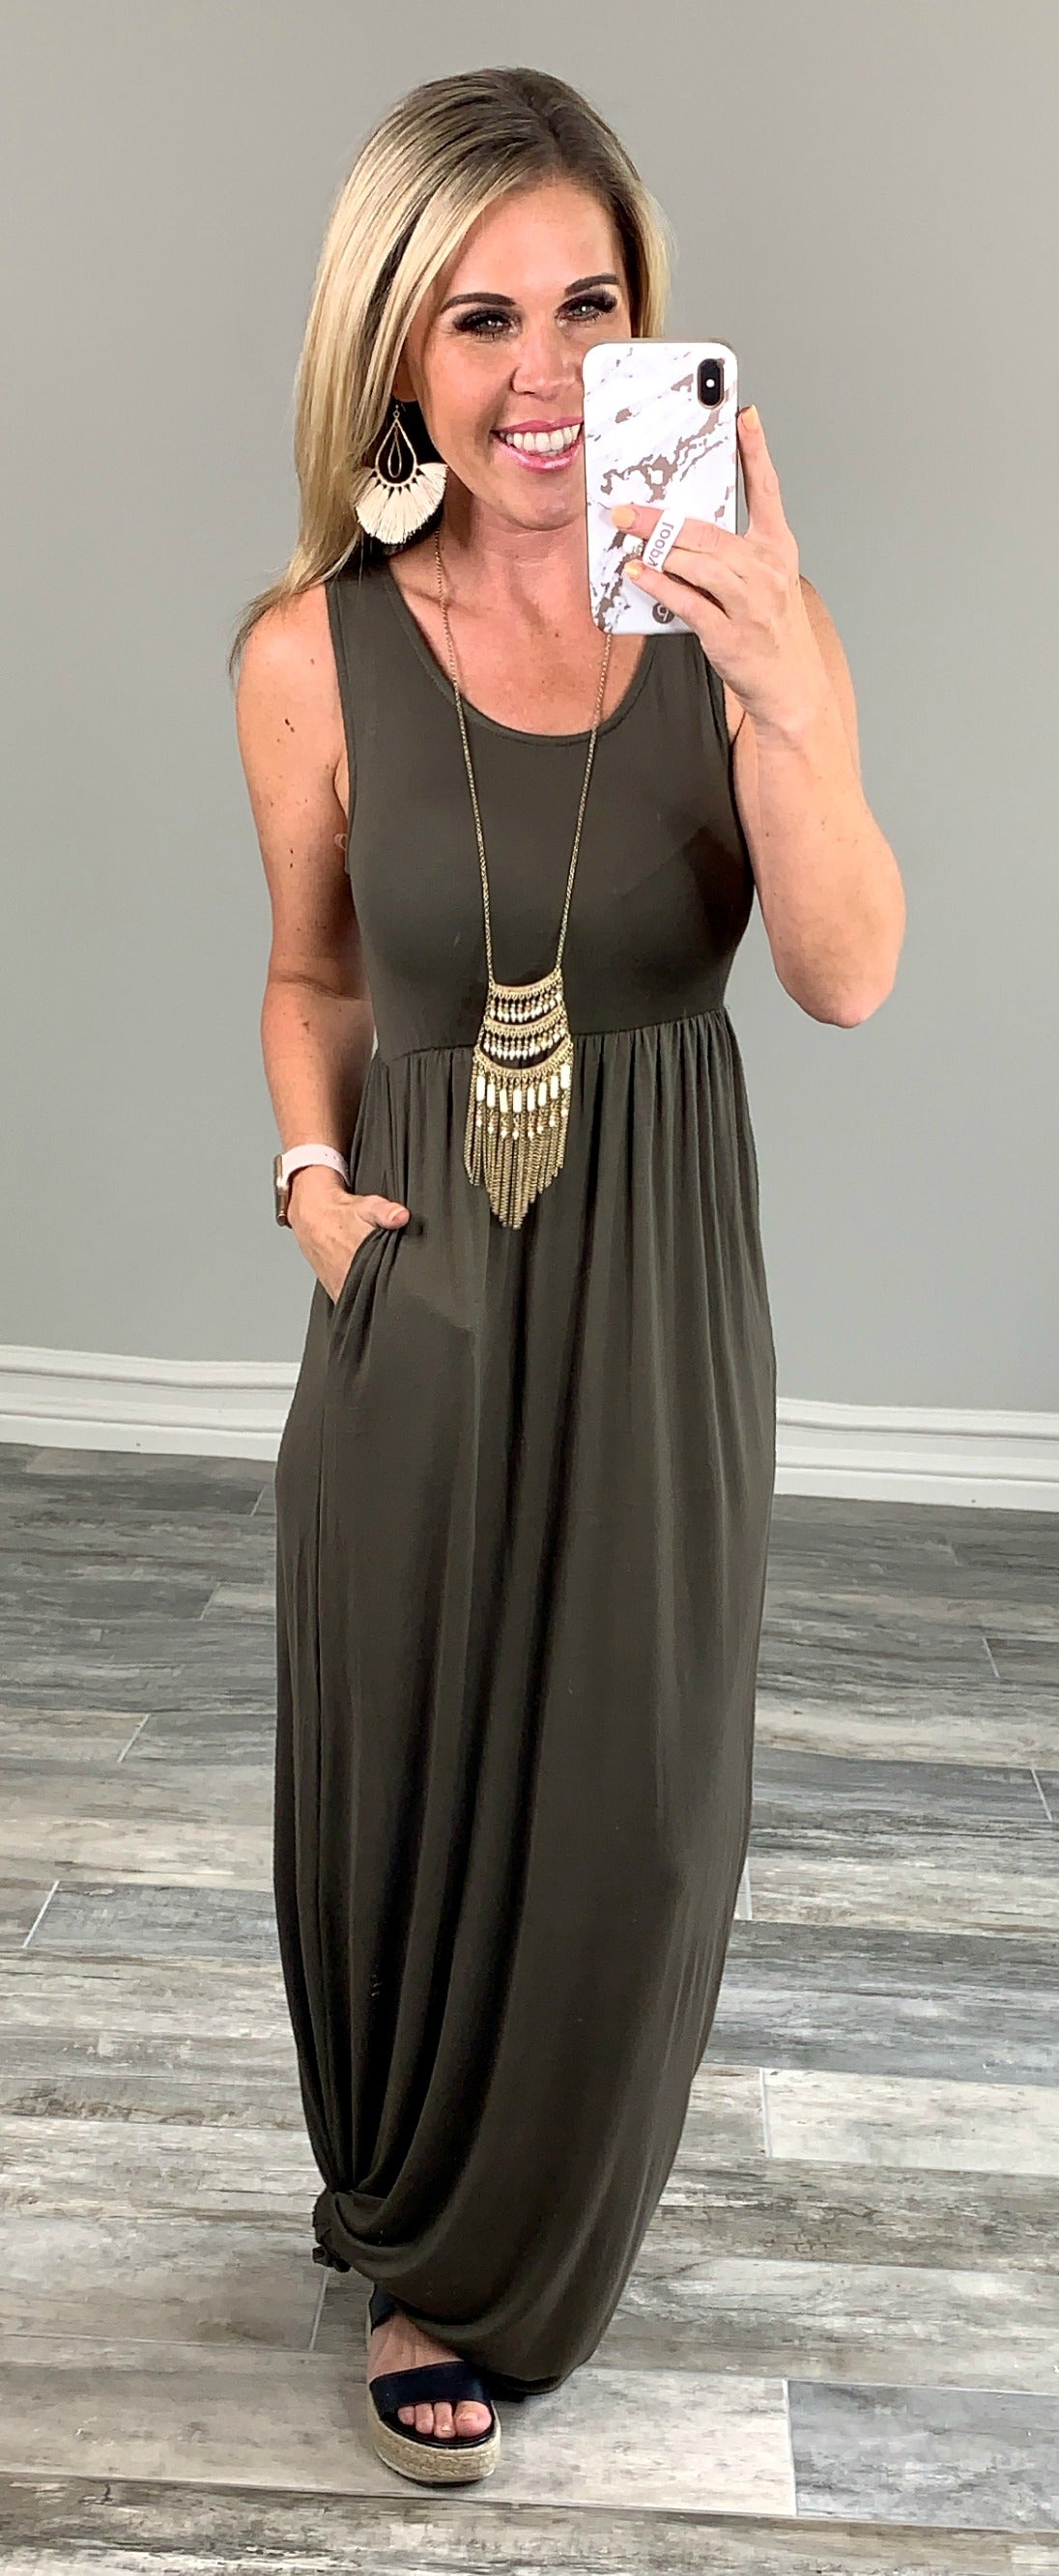 I'll Be By the Pool Maxi Dress - Olive